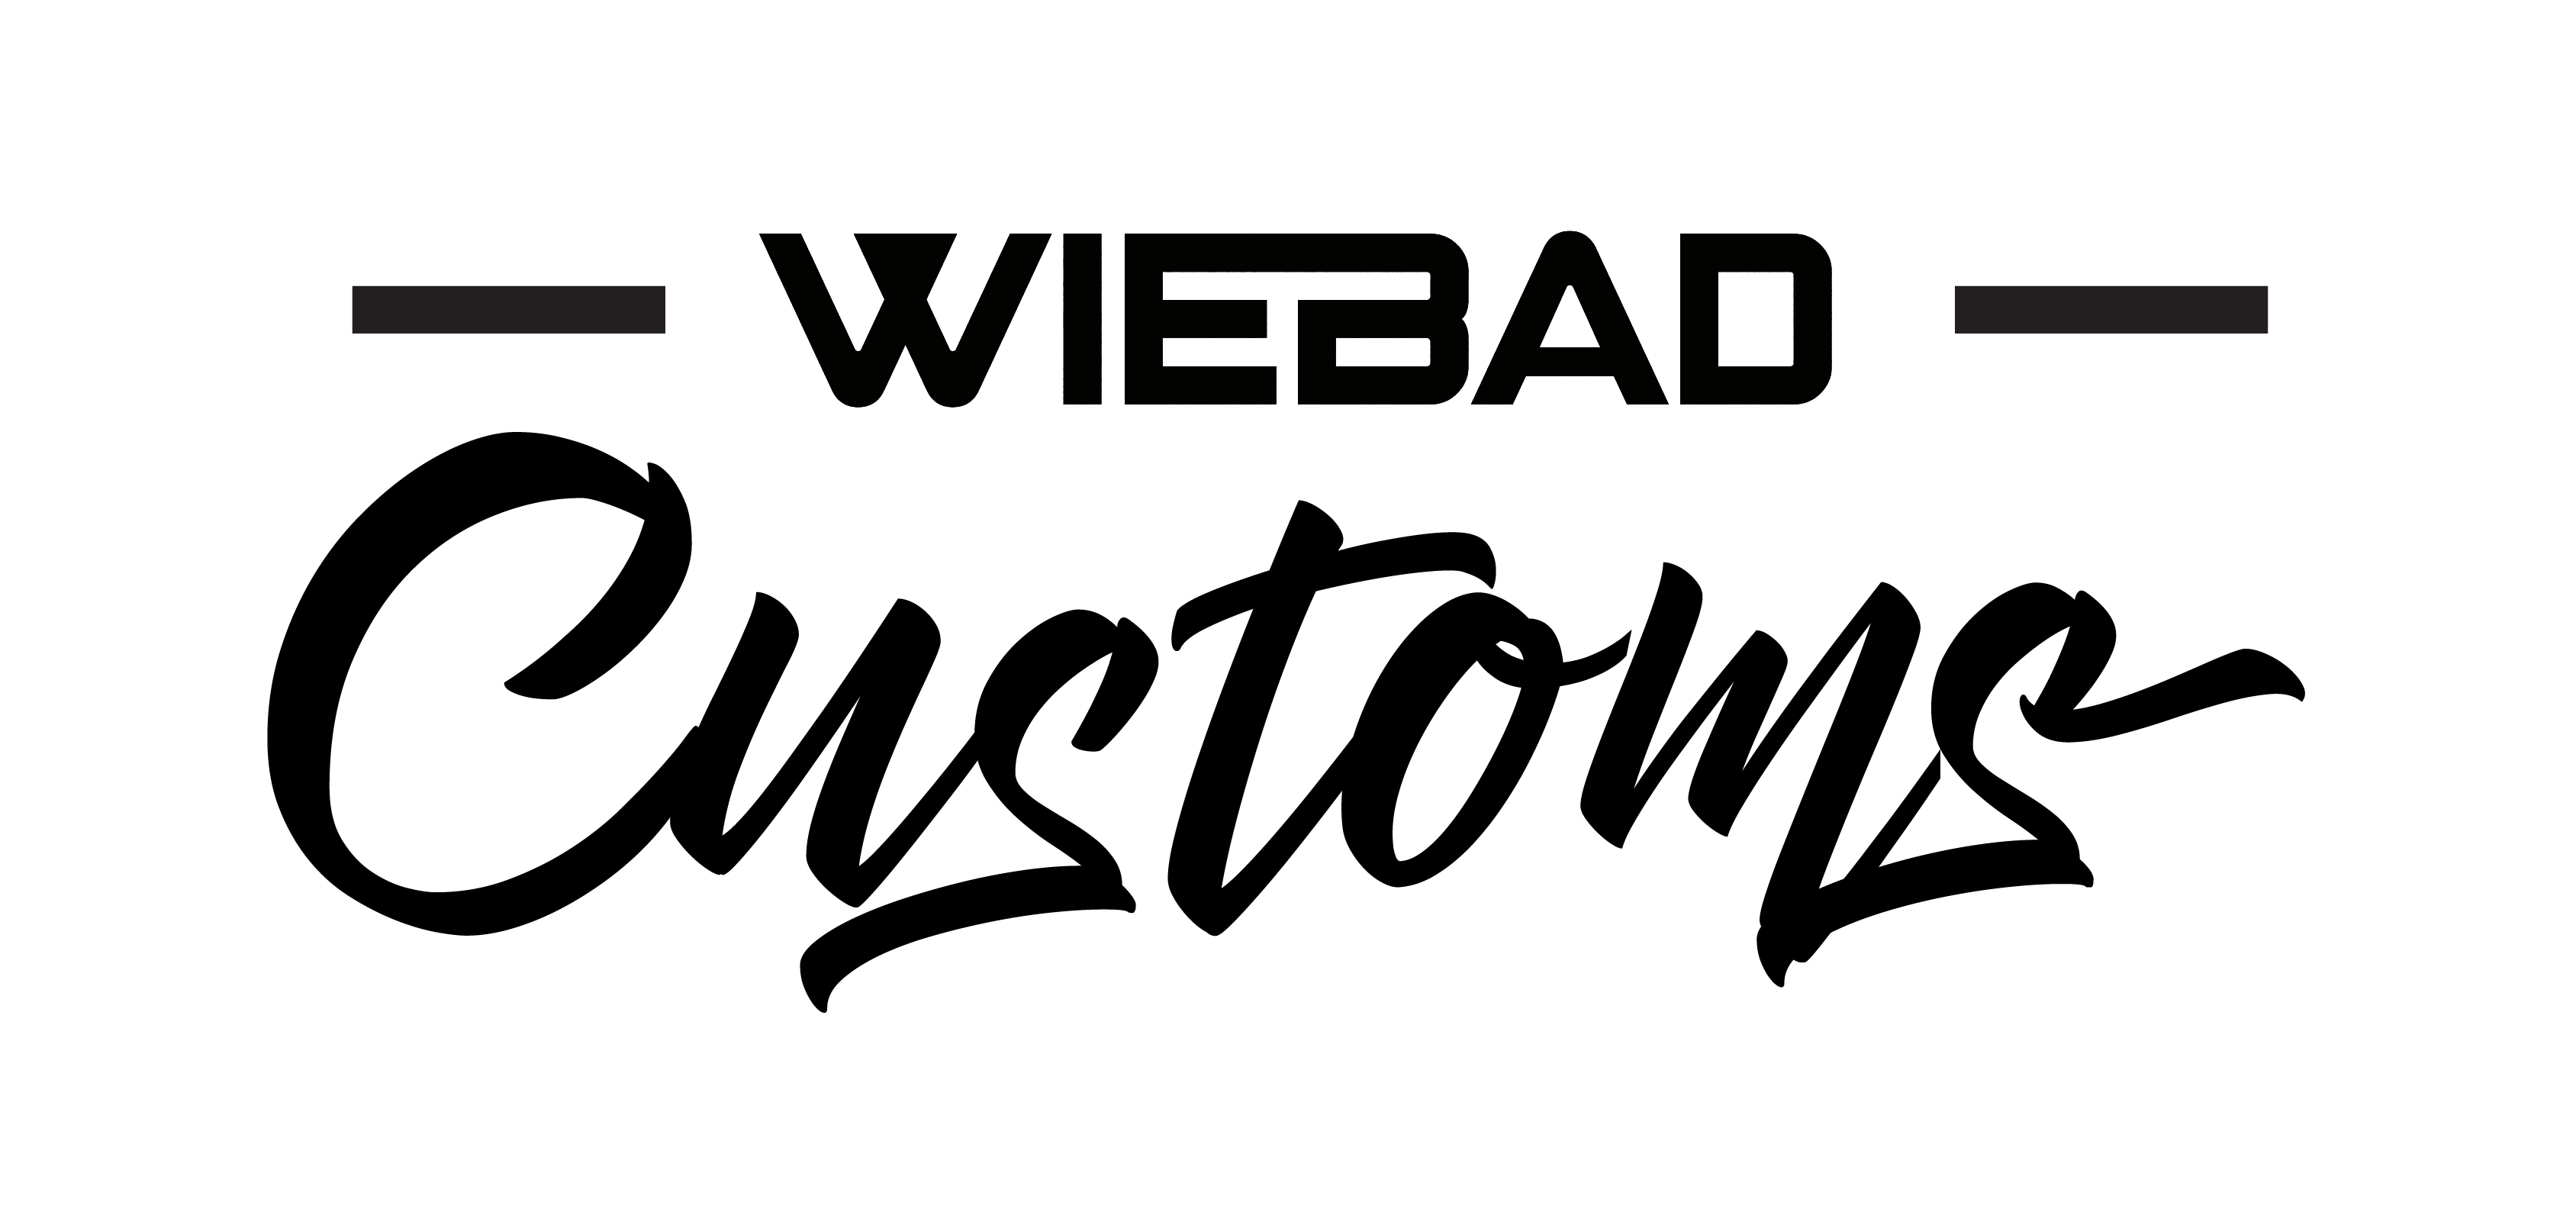 wiebad-custom-shop-logo-final-2018-01.jpg